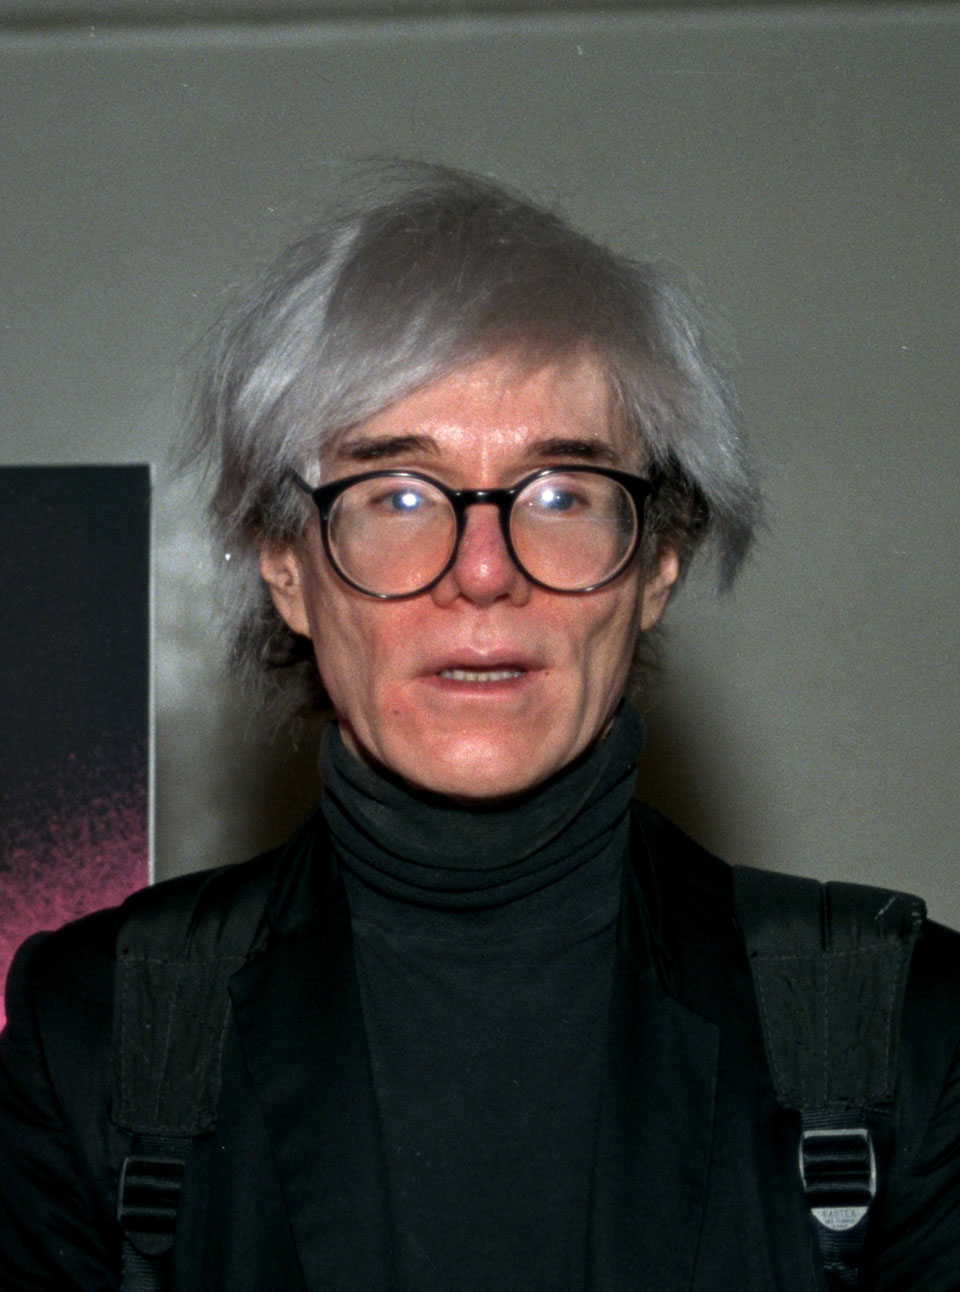 Lost Andy Warhol Pictures To Go On Public Display For The First Time